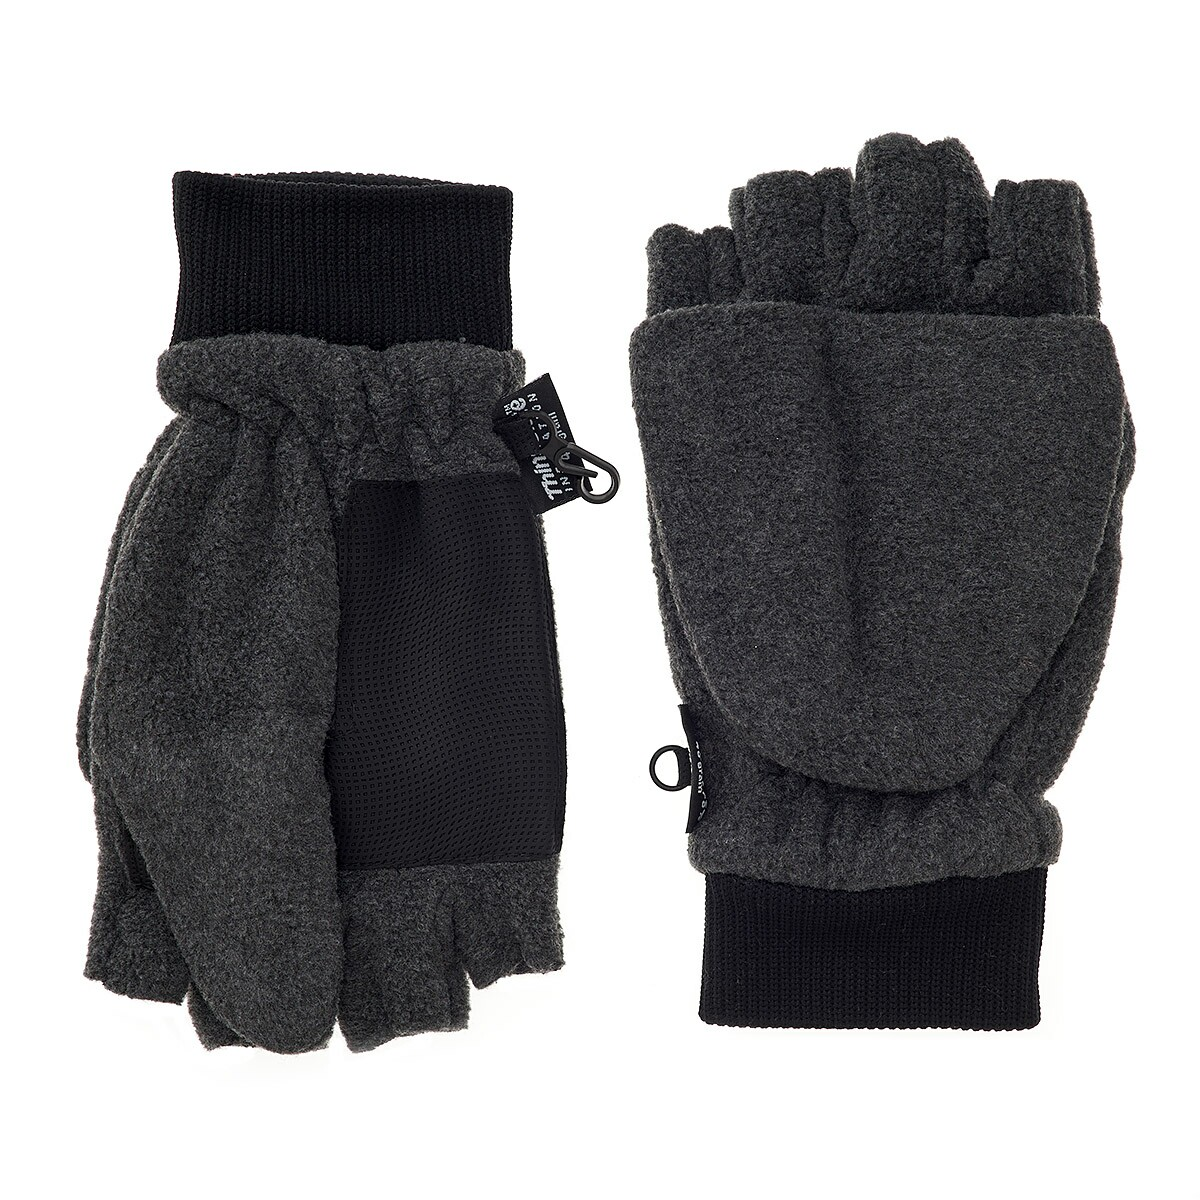 Our men's fur lined gloves are crafted with sturdy Napa leather for work or play. We present a variety of fur gloves and mittens to suit your individual style. Durable hard wear and comfortable lining put the finishing touch to your outfit.